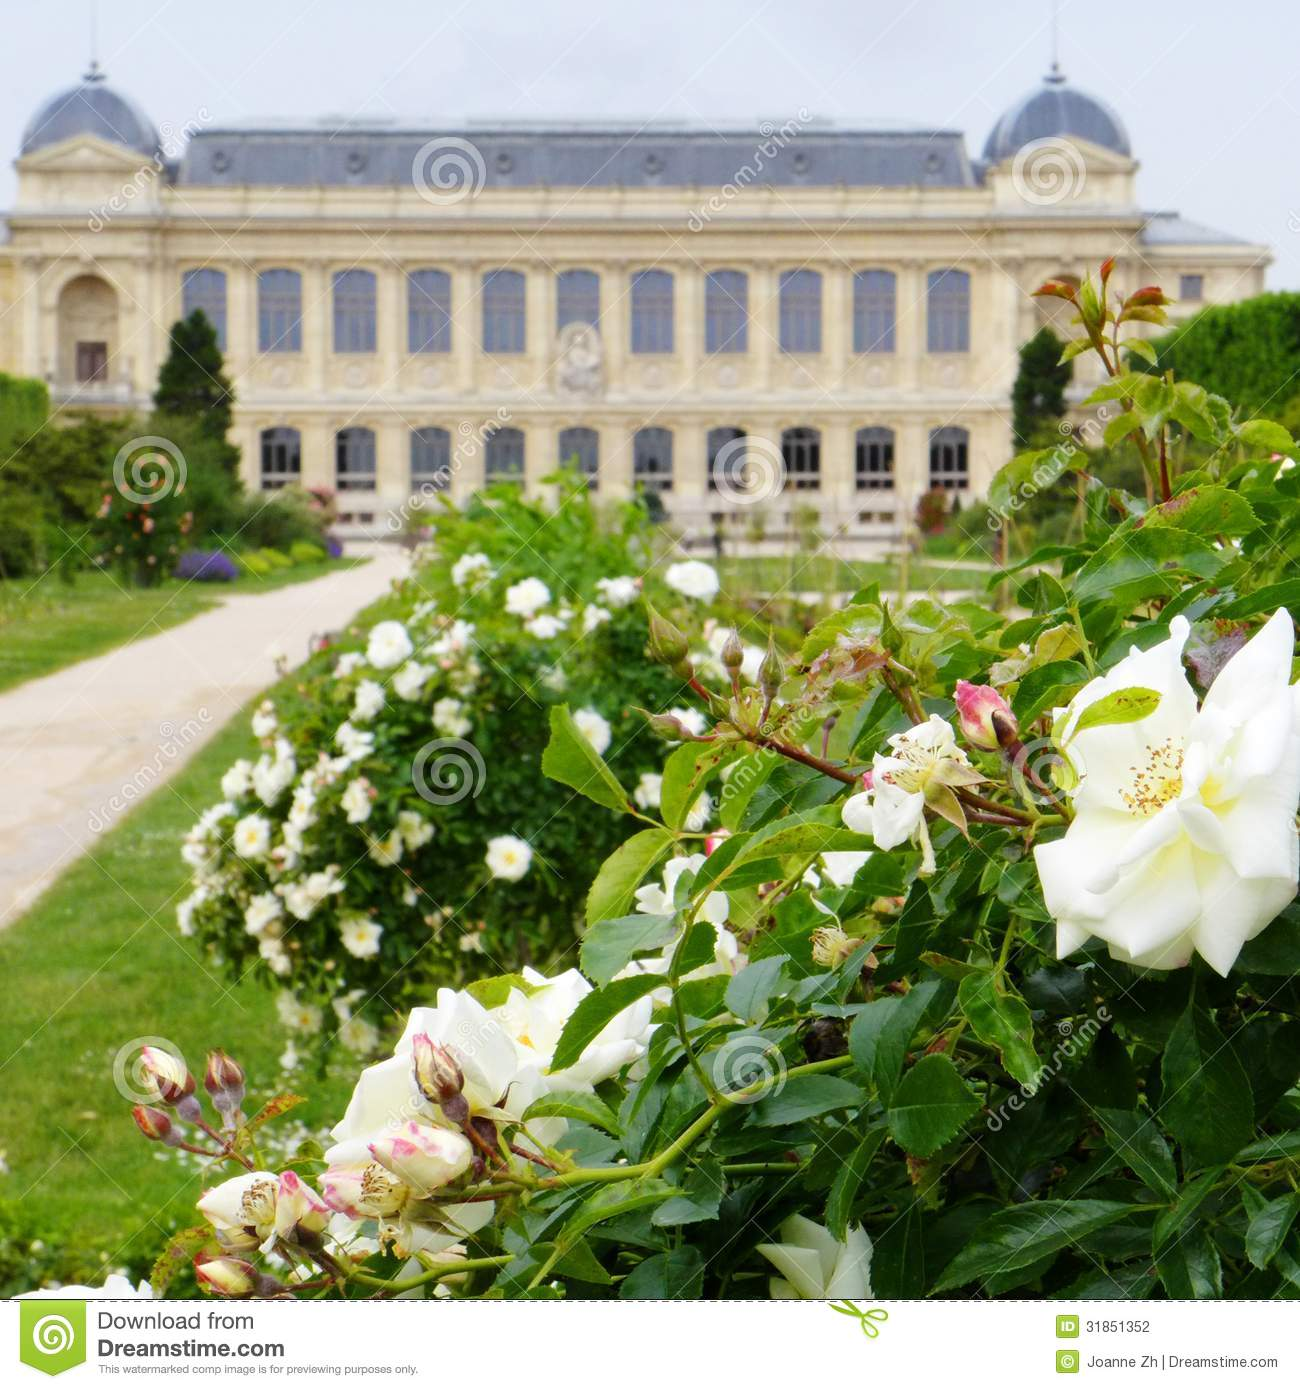 Jardin des plantes paris france stock photography for Plus grand jardin de paris